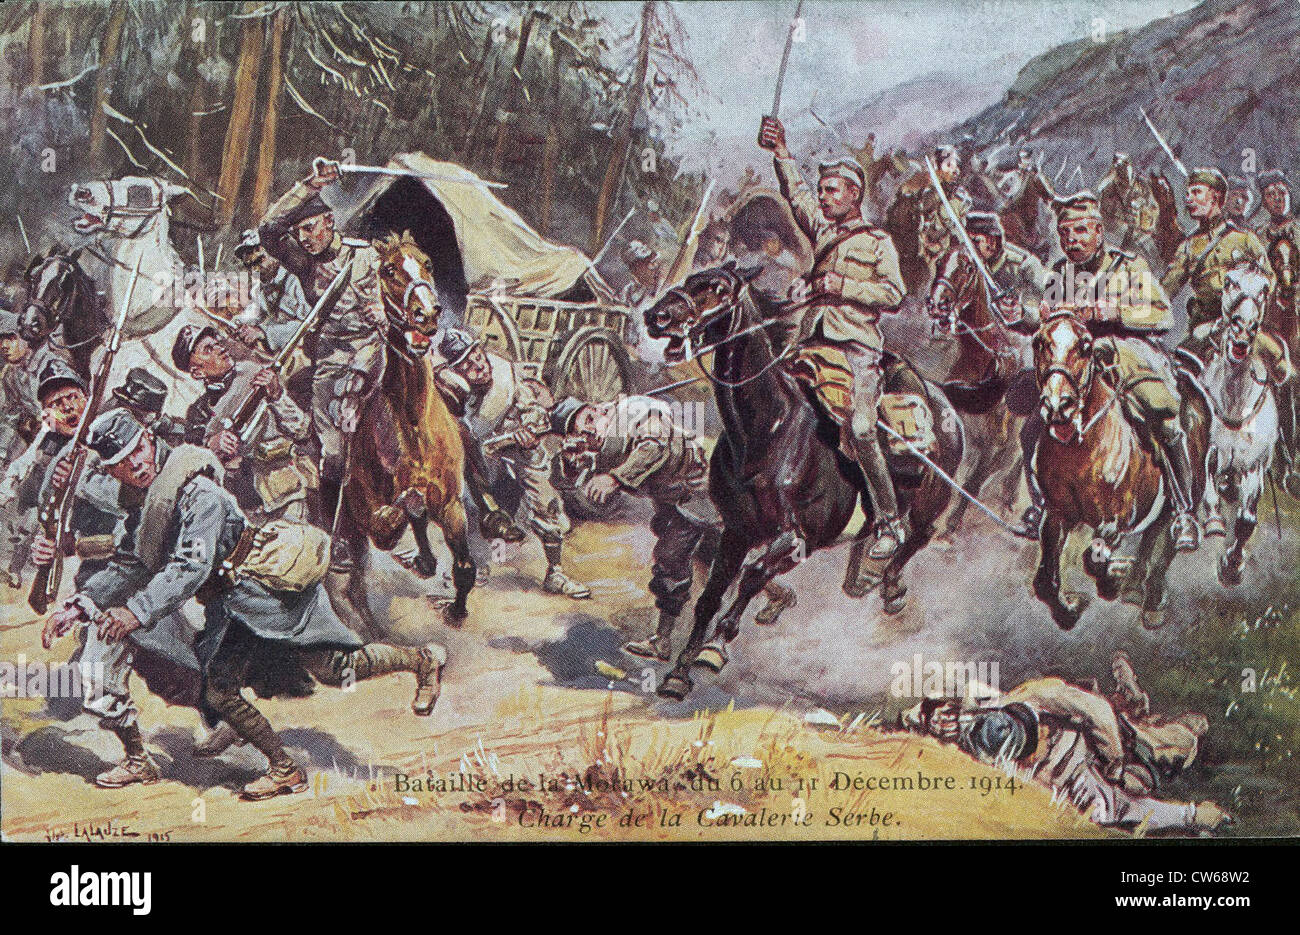 Battle of the Motawa, December 6-11, 1914: charge of the Serb cavalry, attacking an Austrian convoy Stock Photo